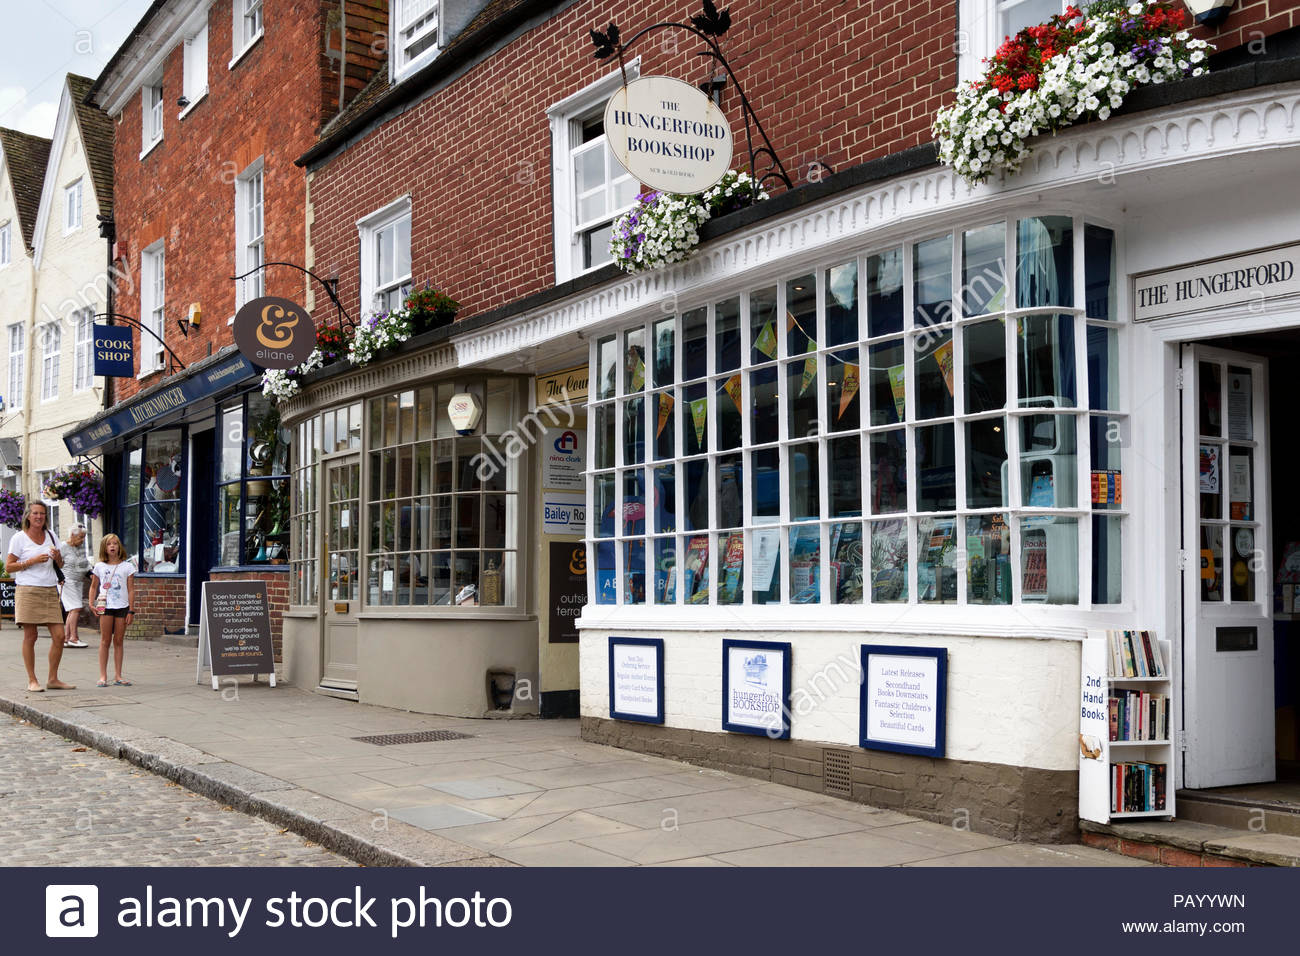 The Hungerford Bookshop and Hungerford High Street, Berkshire, England, UK Stock Photo